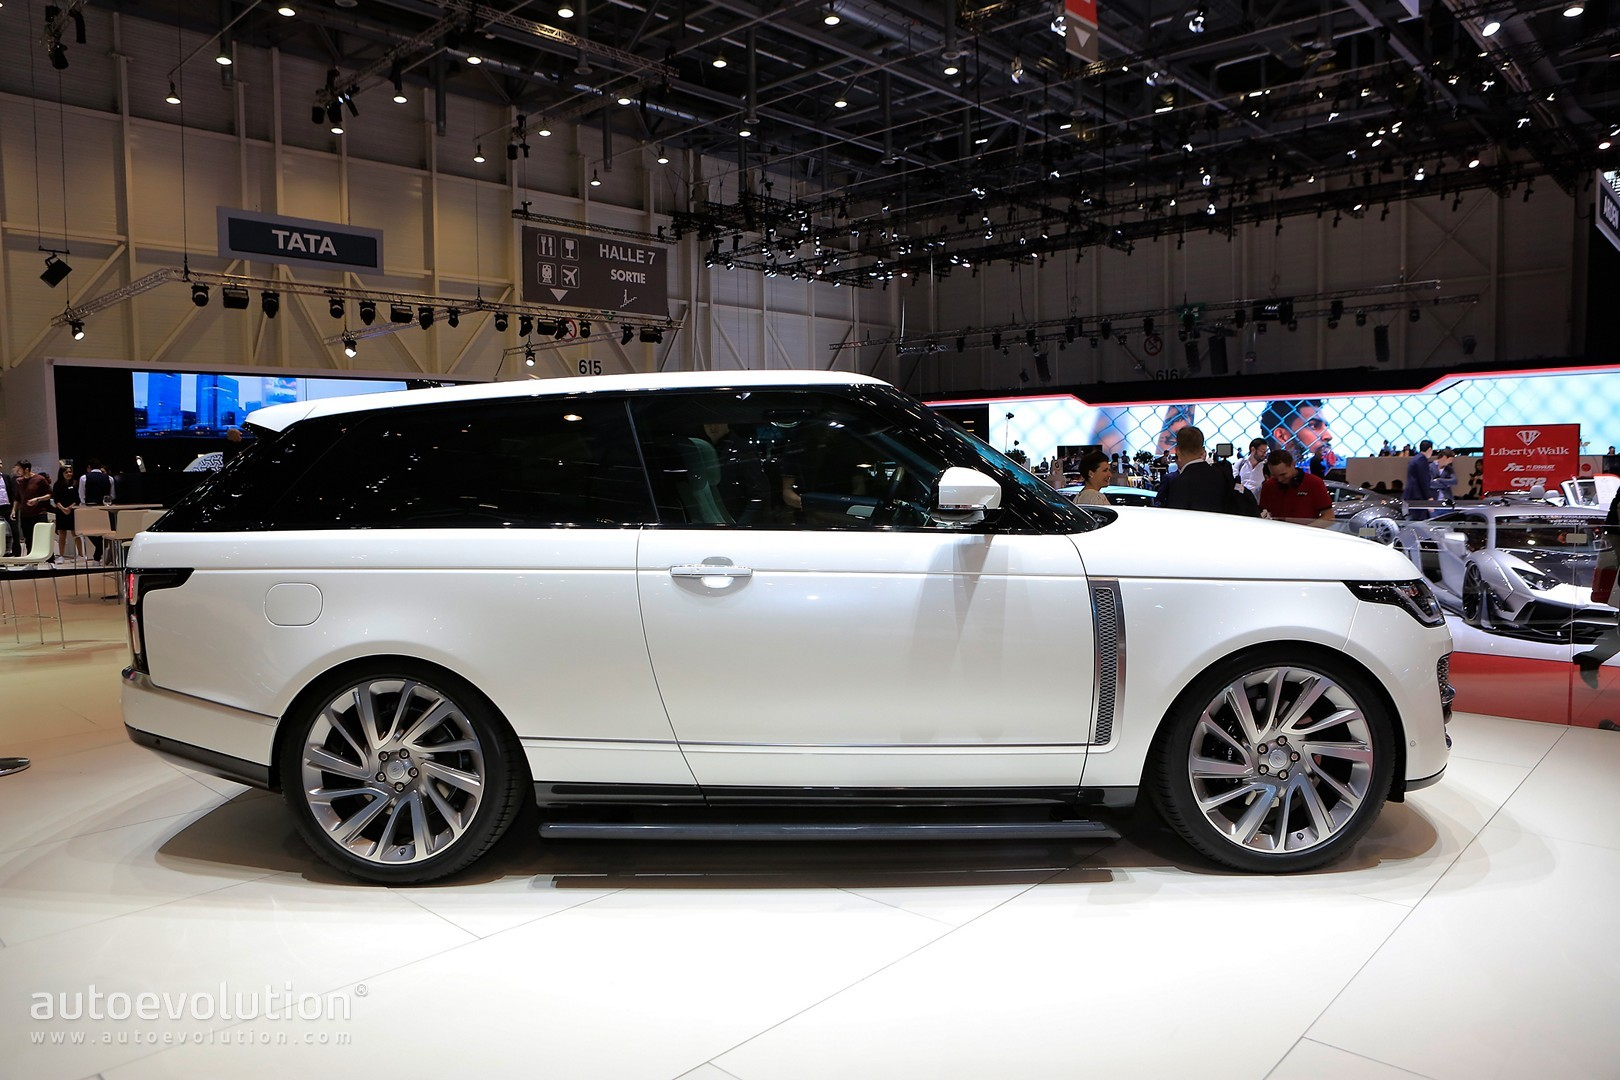 Range Rover Suv Interior >> Range Rover SV Coupe Proves Less Is More in Geneva - autoevolution